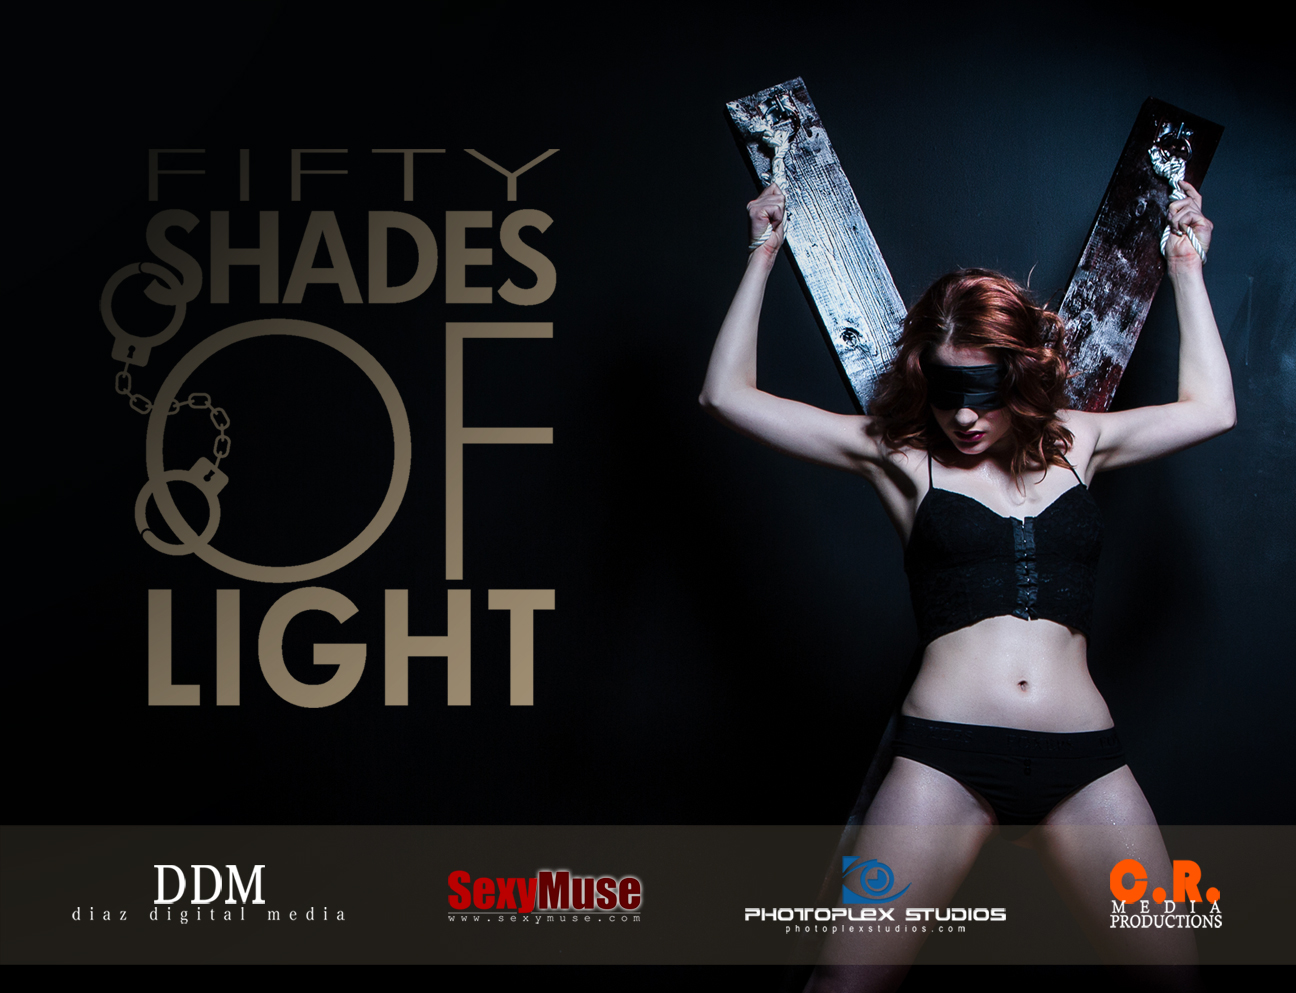 50 Shades of Light